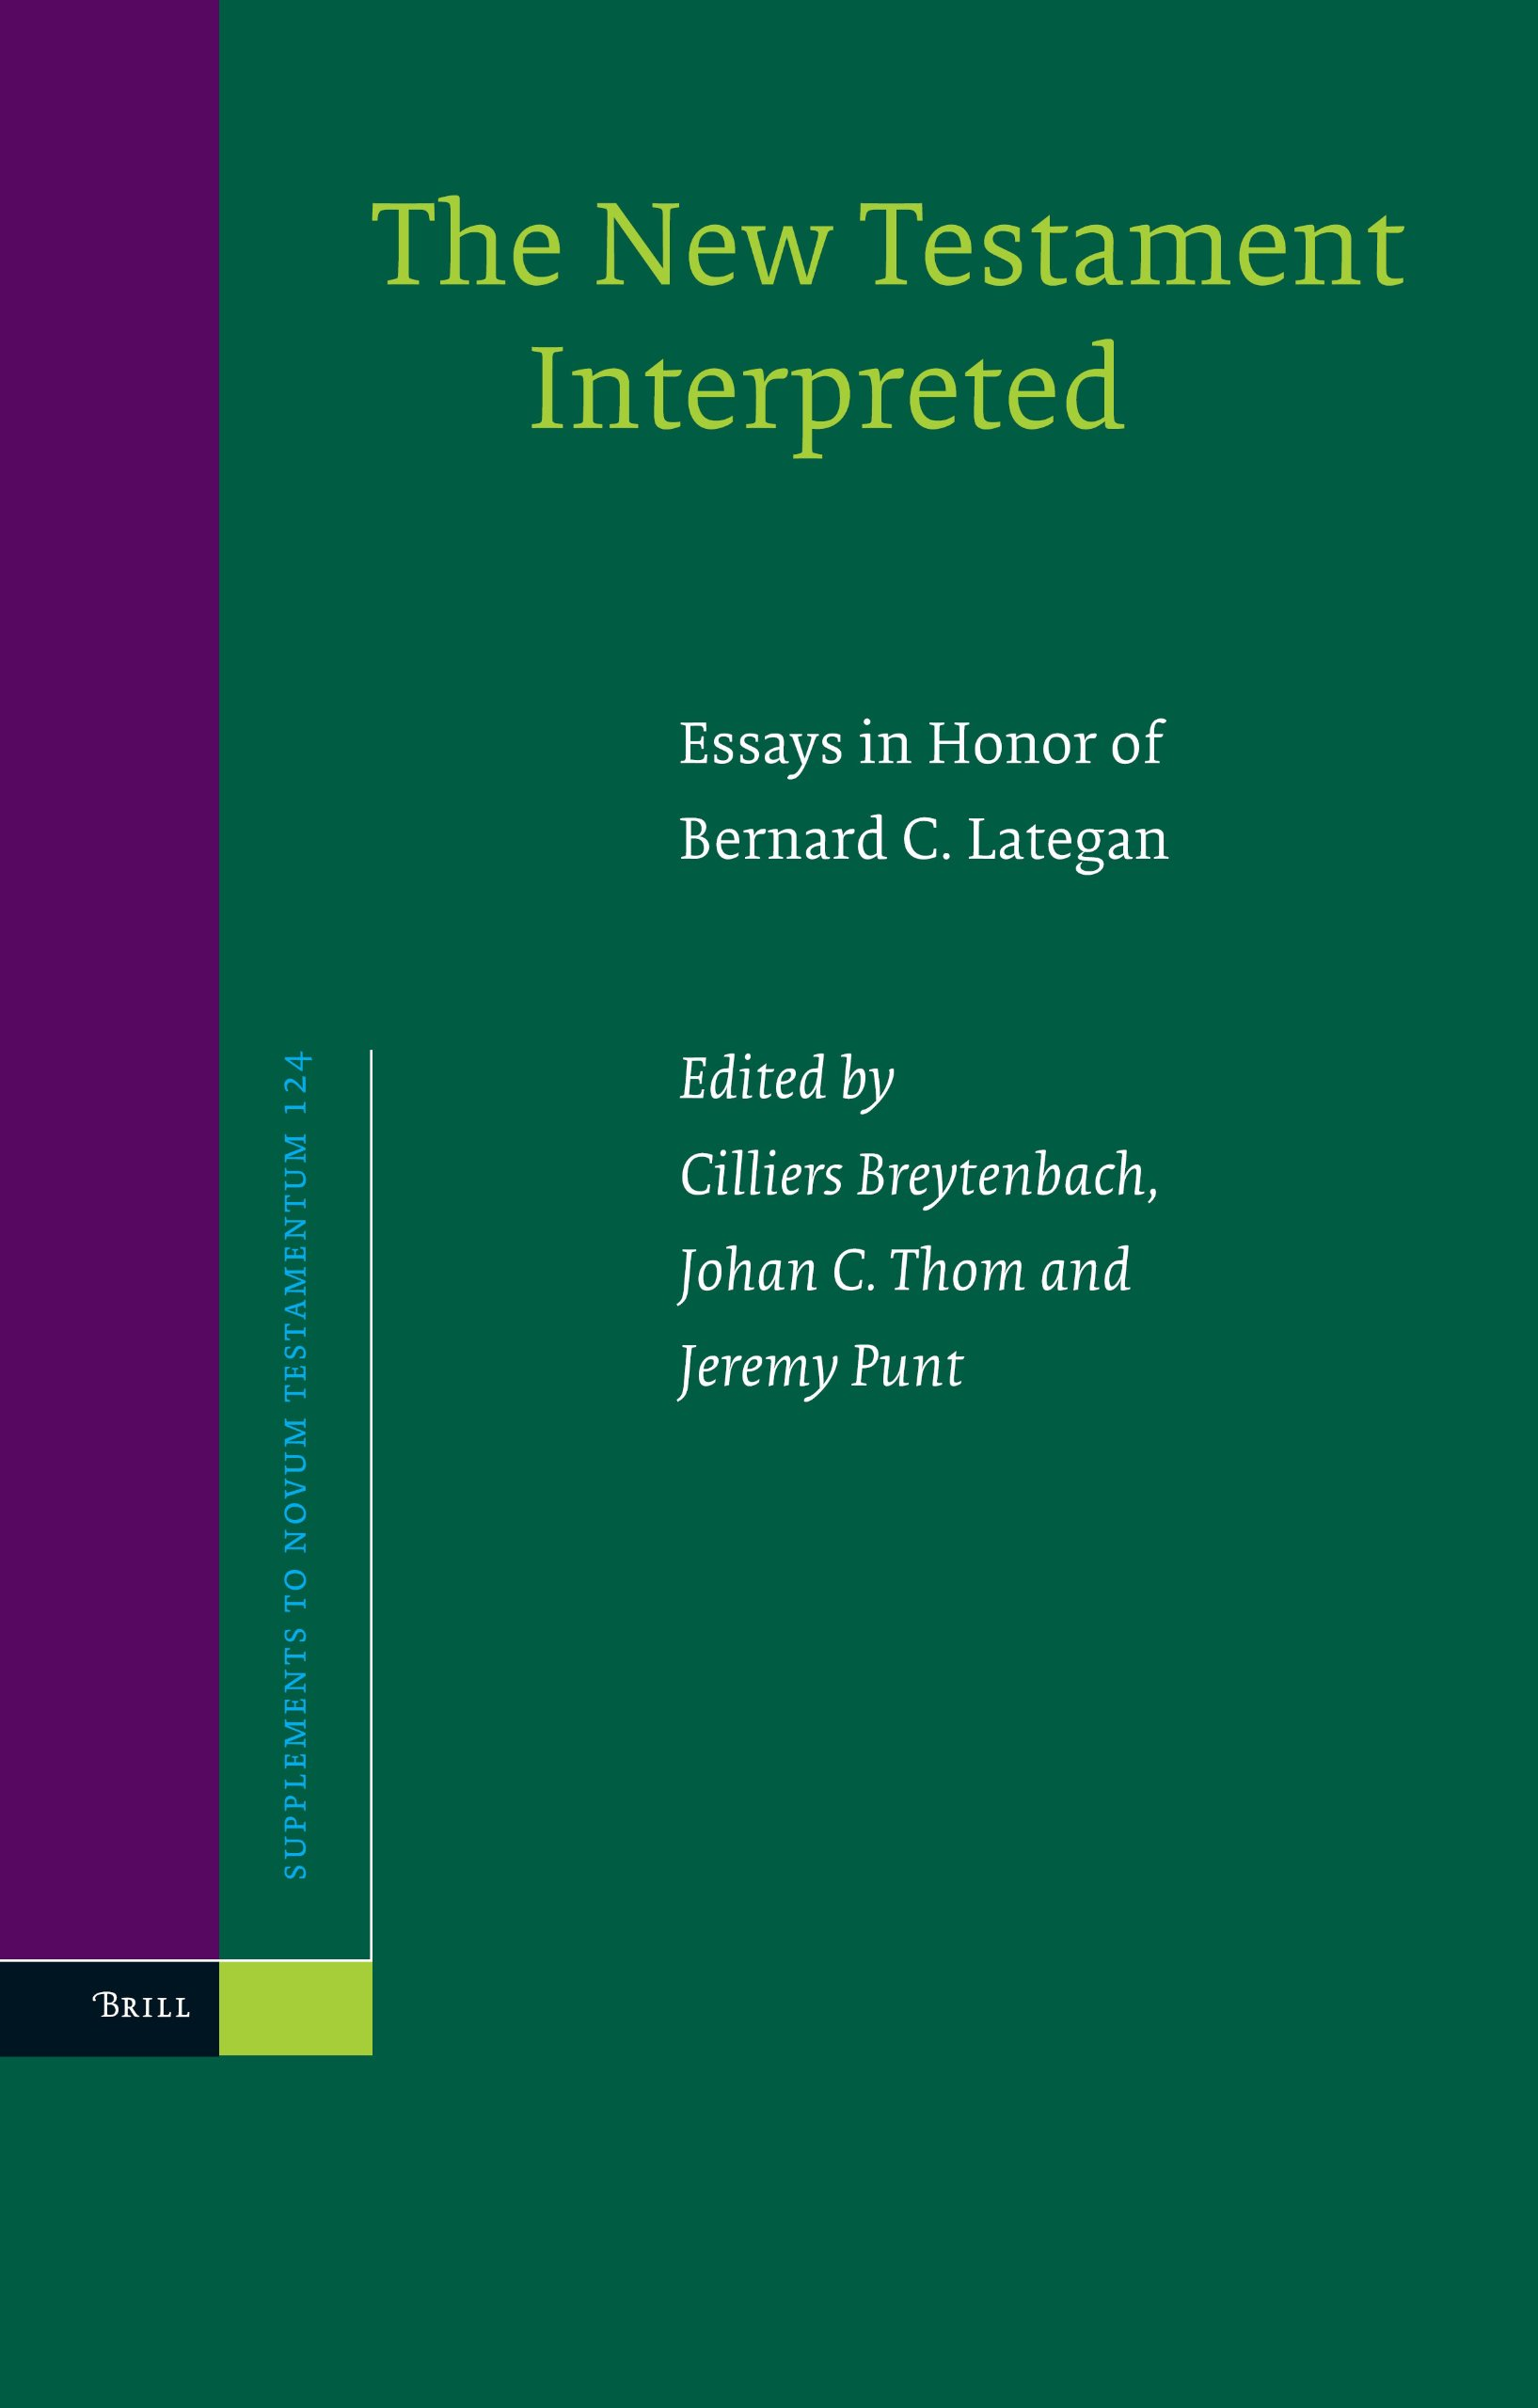 The New Testament Interpreted: Essays in Honor of Bernard C. Lategan